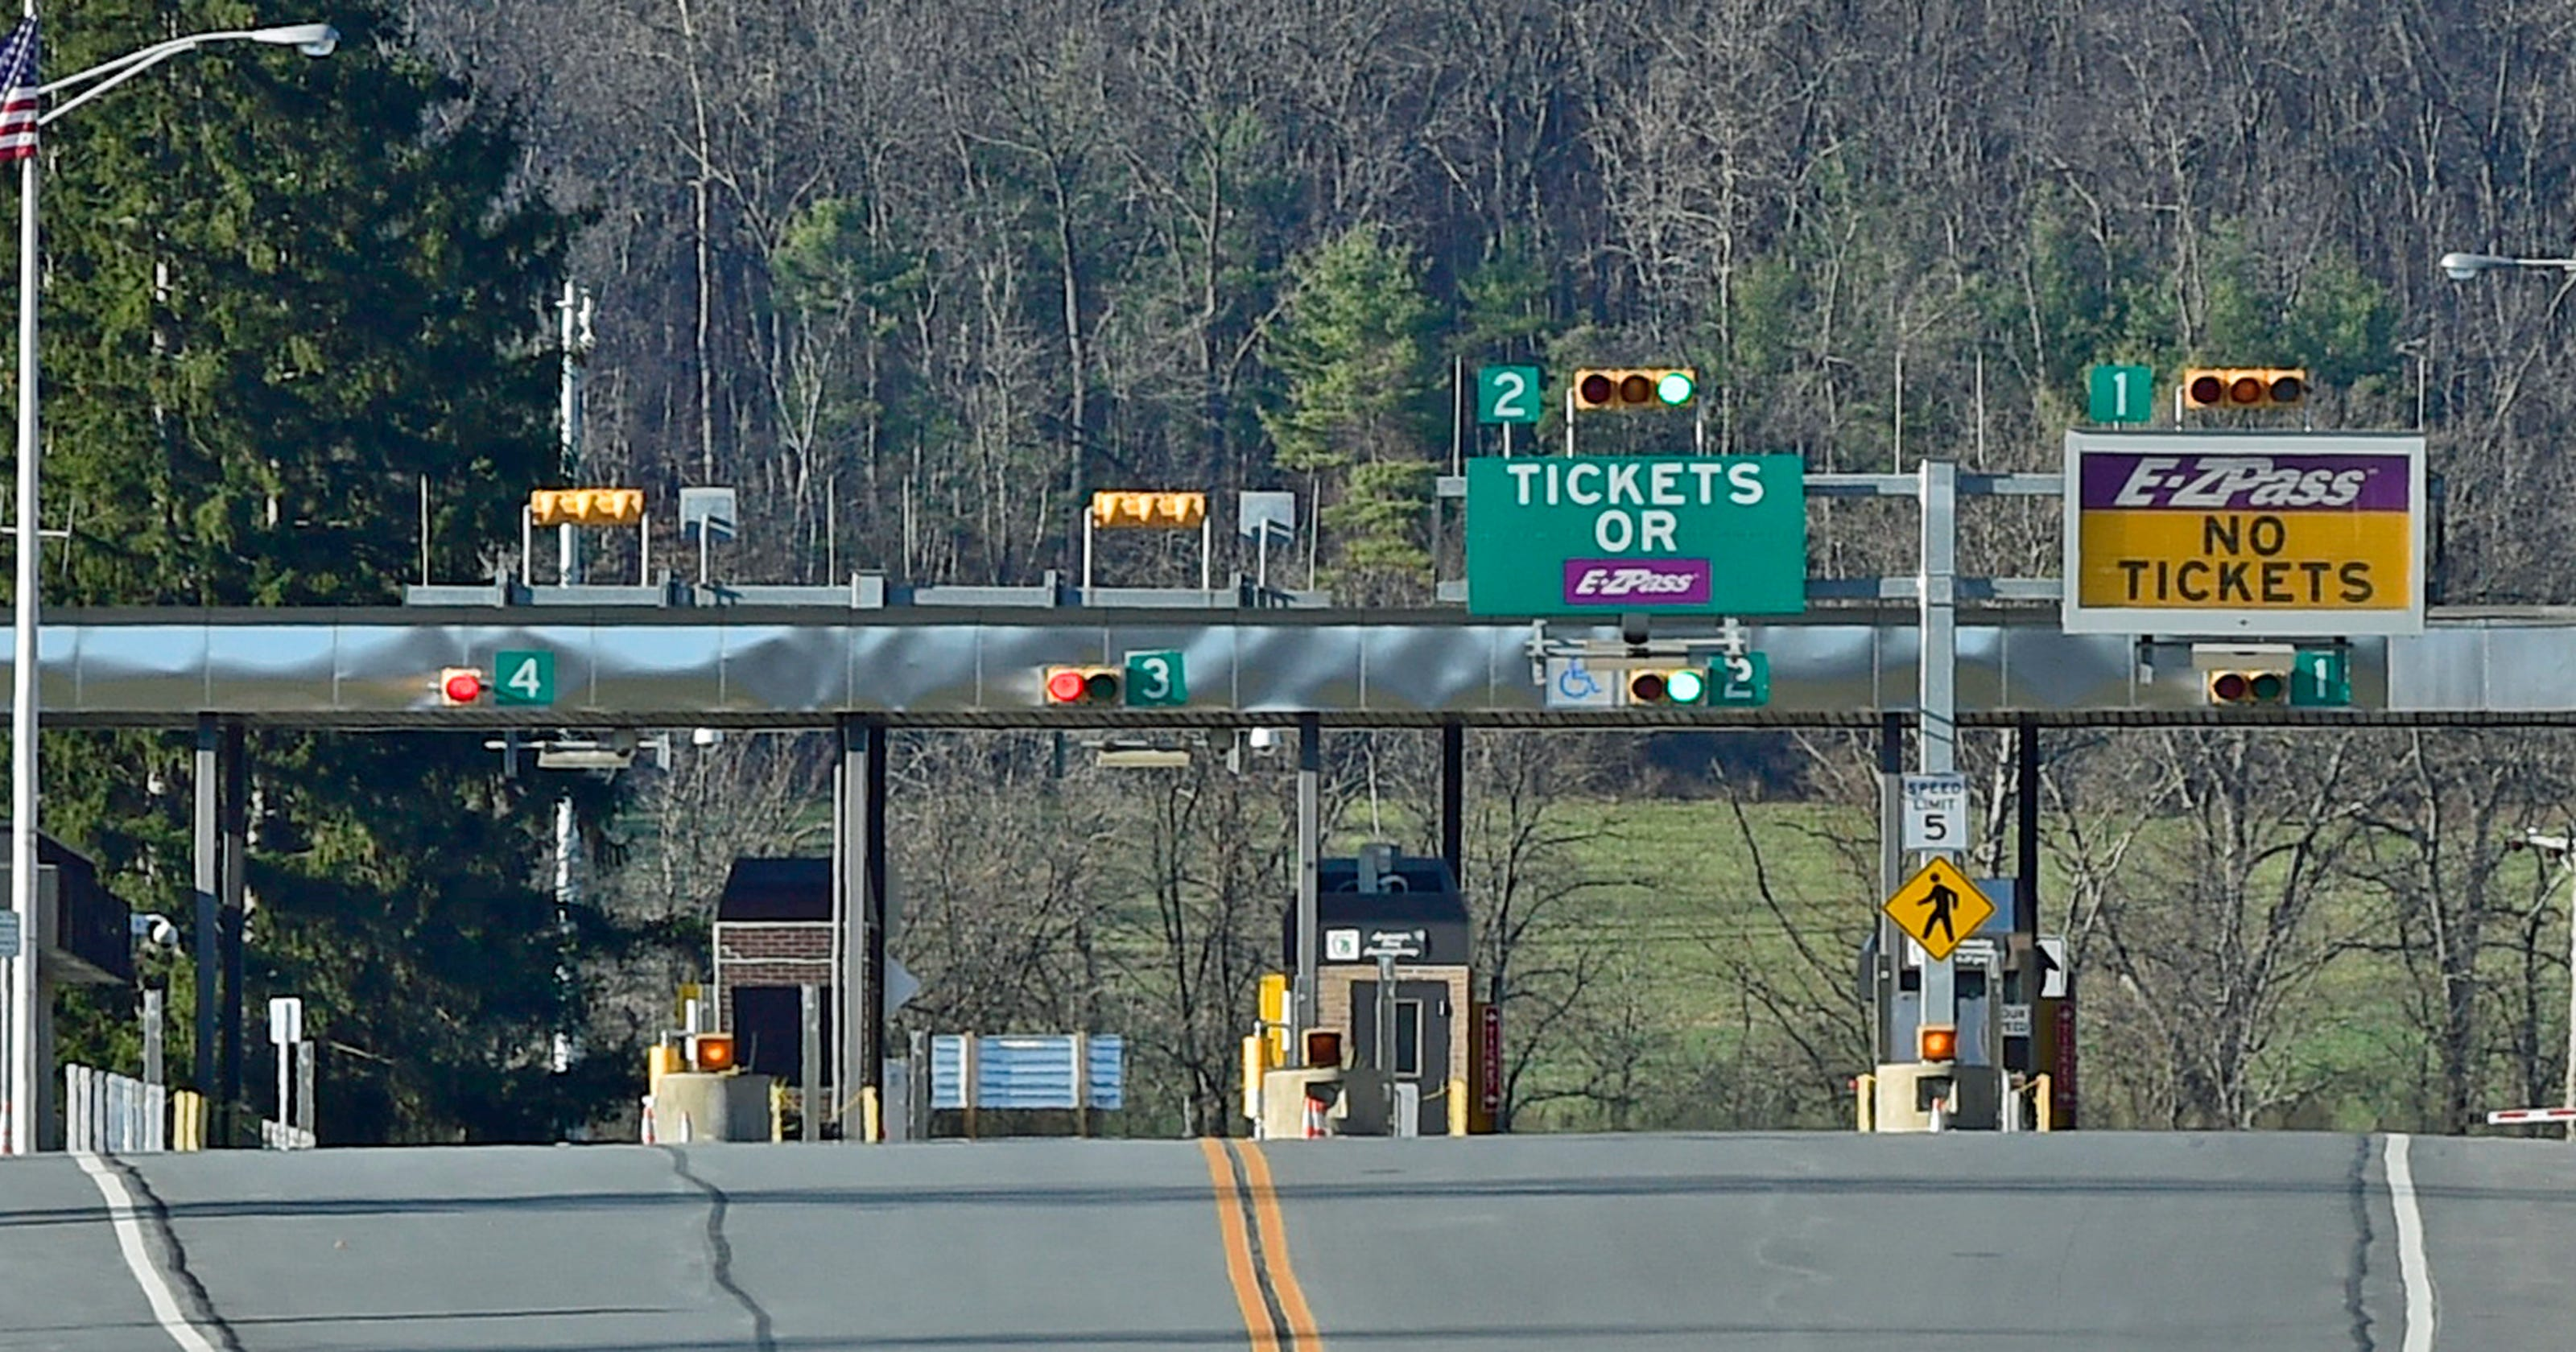 PA Turnpike expects record setting traffic